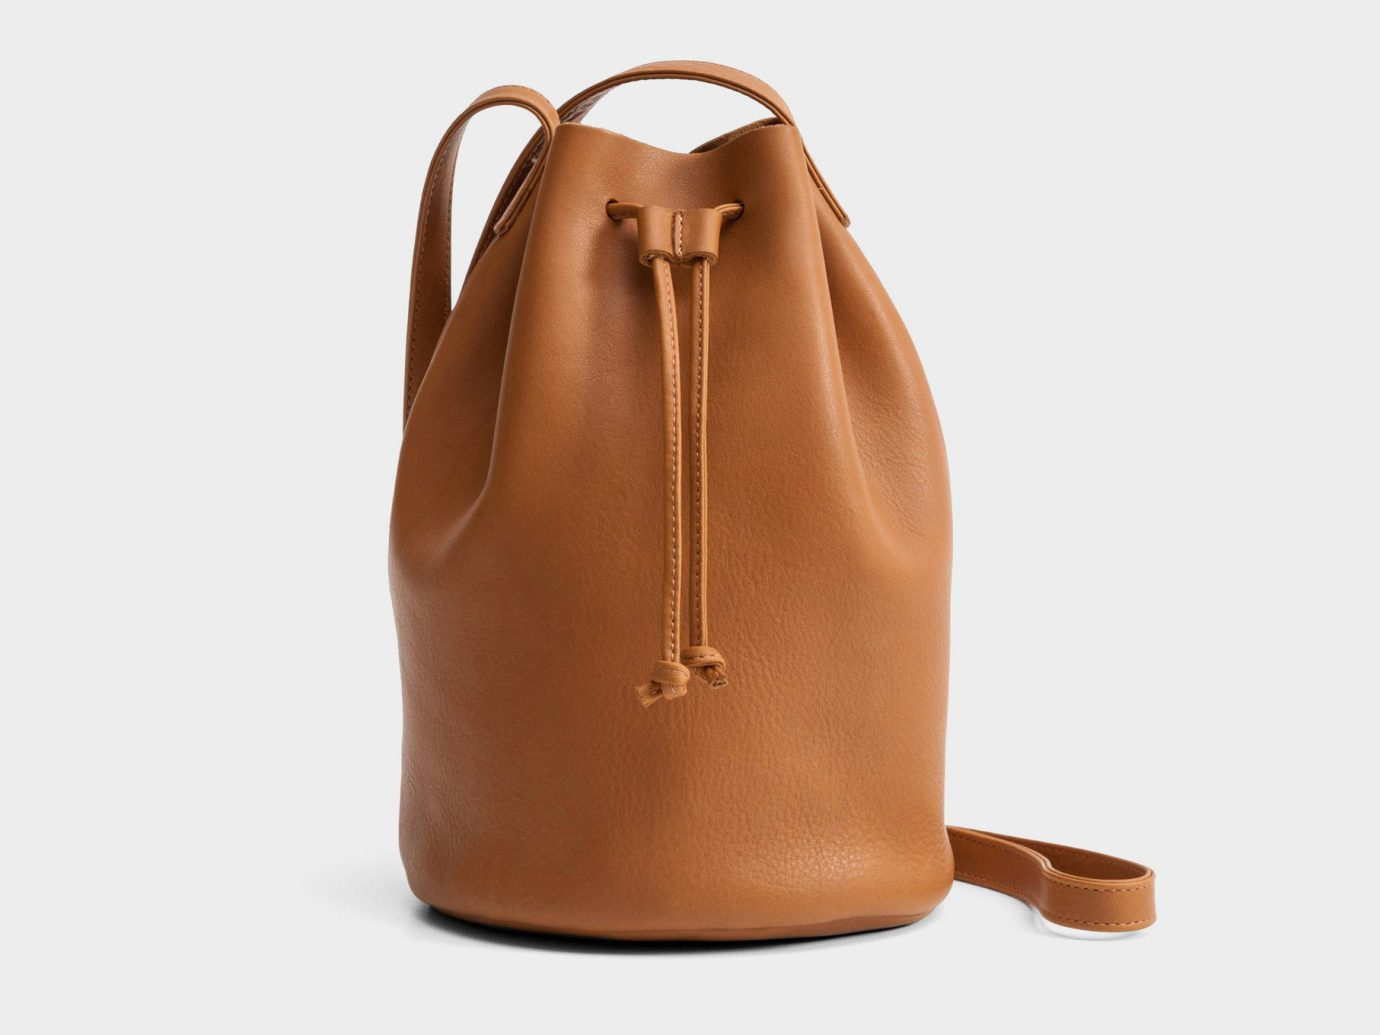 Girls Getaways Trip Ideas Weekend Getaways bag brown leather product handbag caramel color shoulder bag accessory product design tan